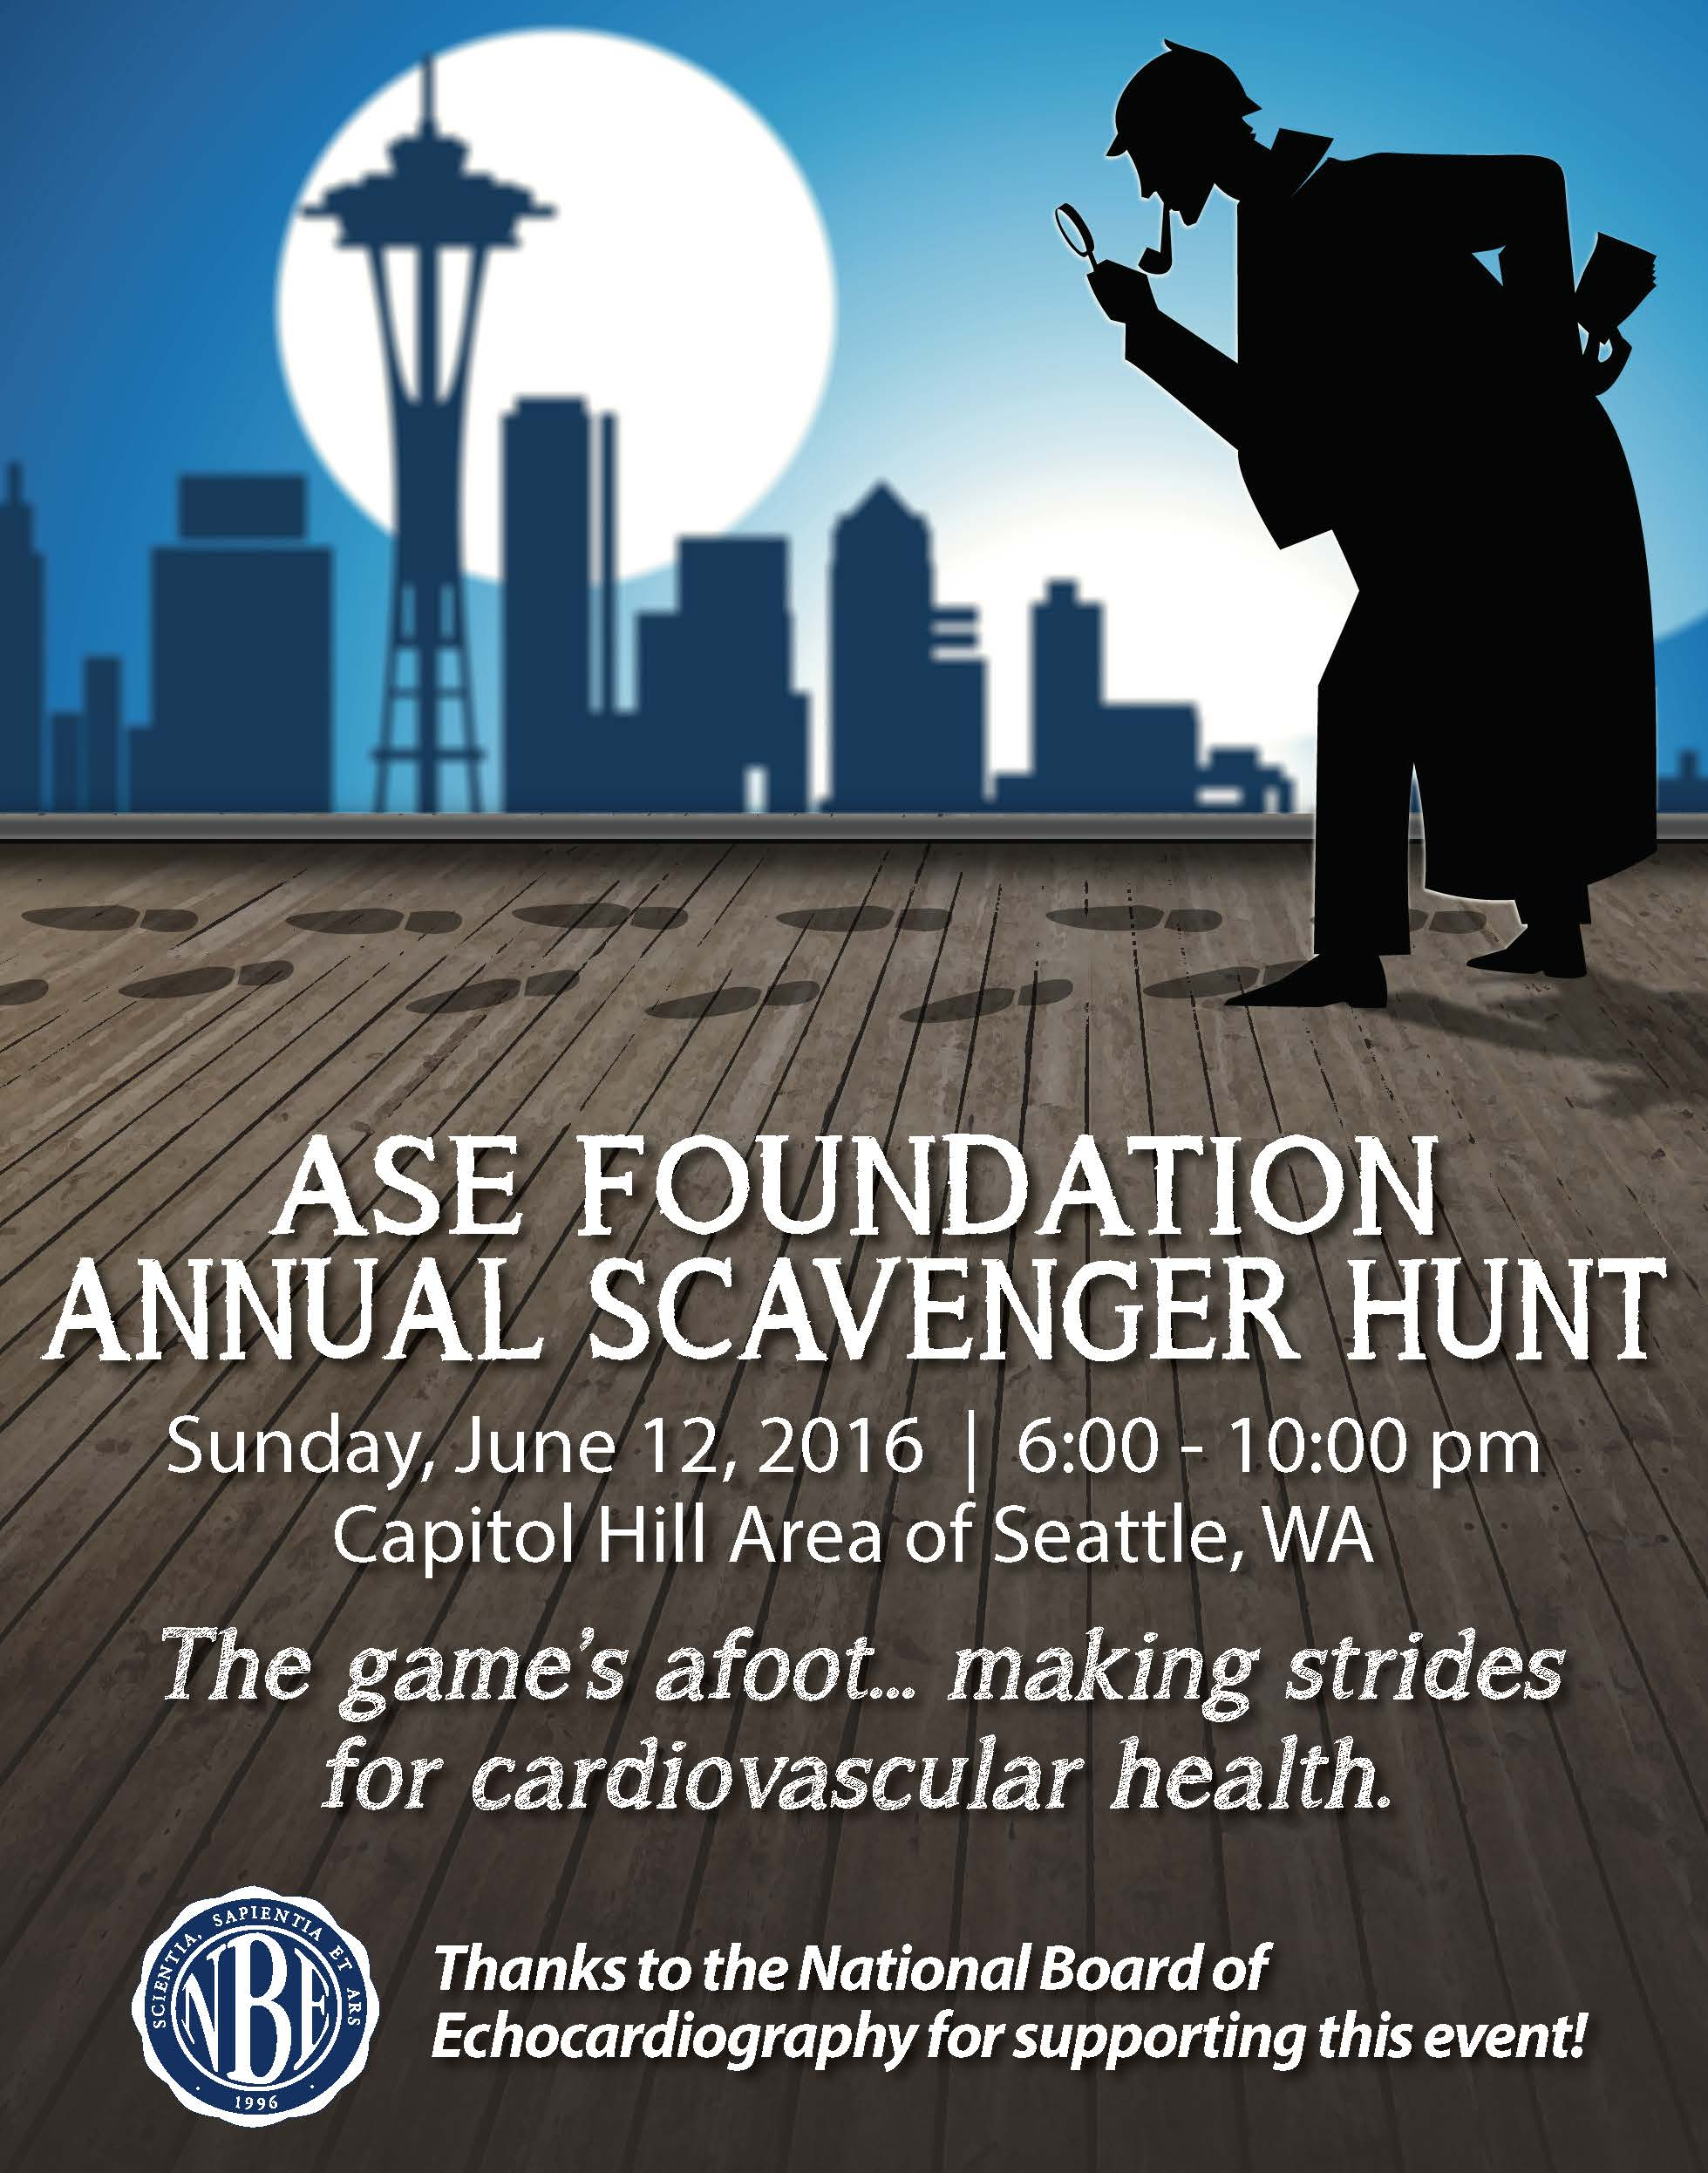 ASEF 2016 Scavenger Hunt artwork